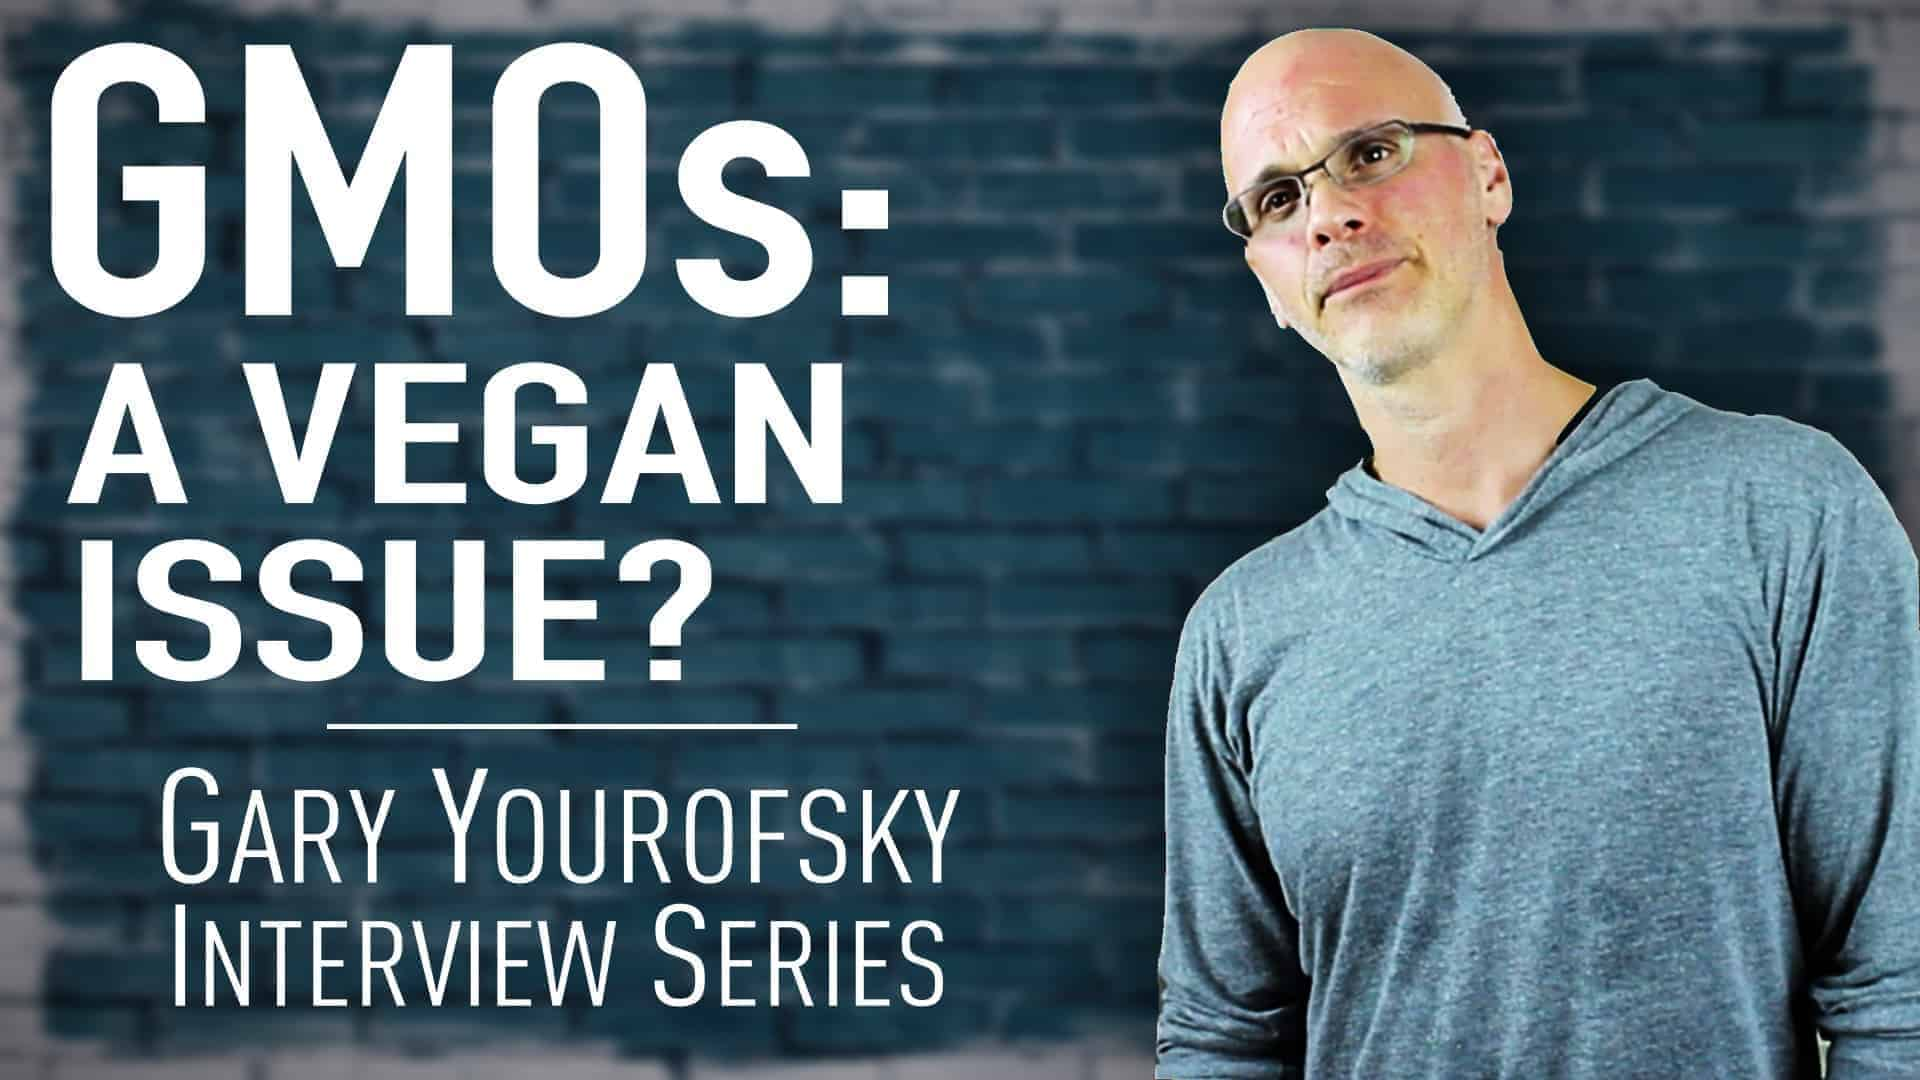 """Author and vegan activist Gary Yourofsky is shown along side the words """"GMOs: A vegan issue? - Gary Yourofsky interview series"""""""